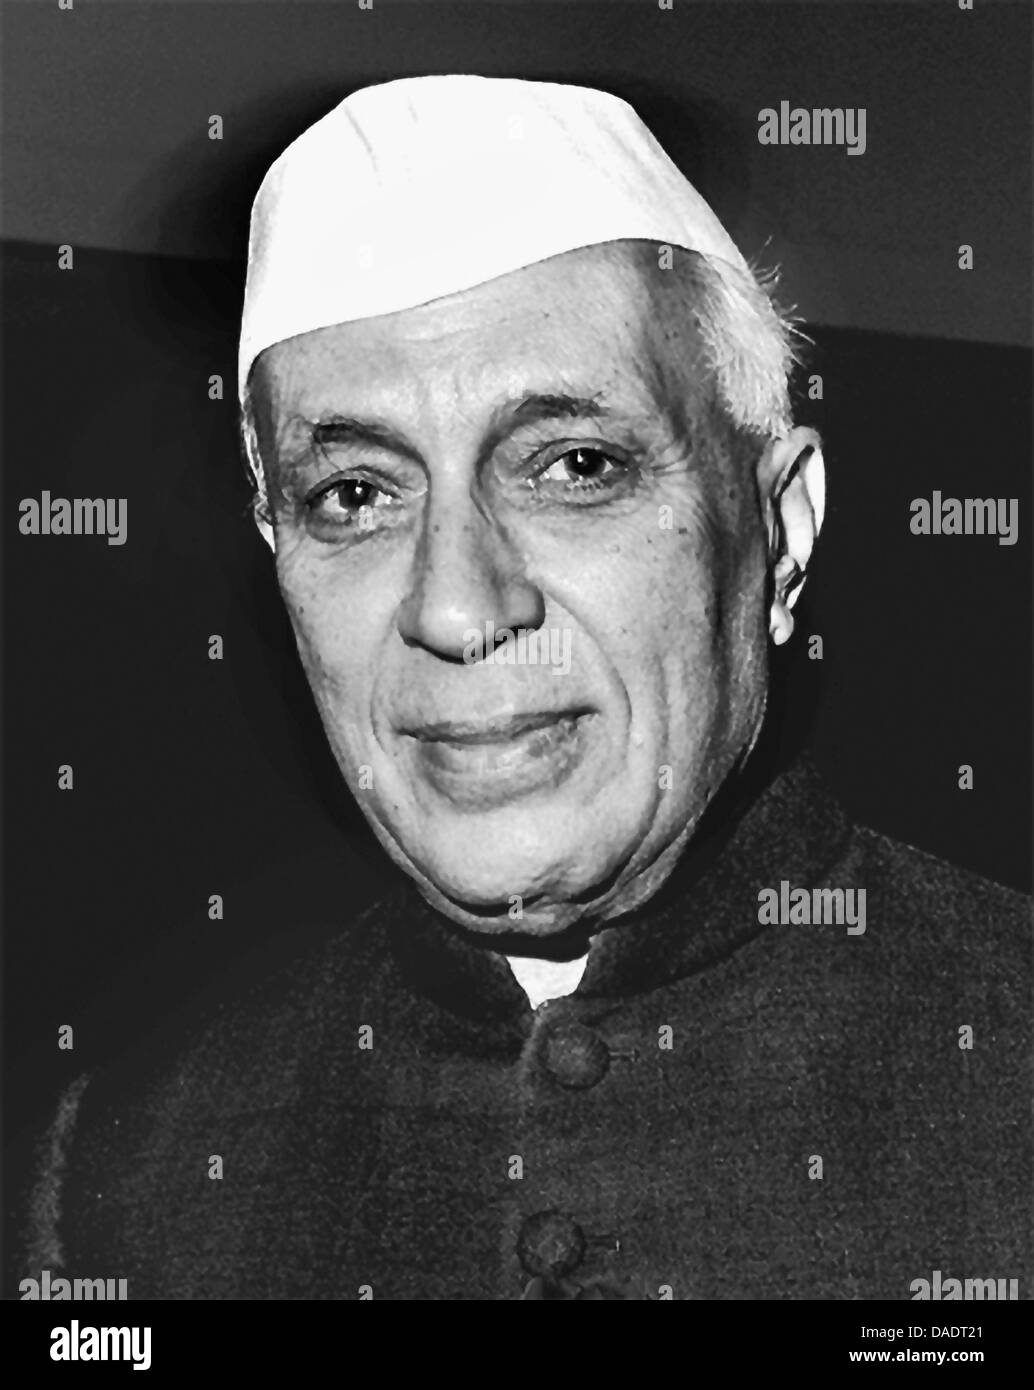 Indian prime minister Jawaharlal Nehru in 1960. Portrait by photographer Fred Stein (1909-1967) who emigrated 1933 - Stock Image